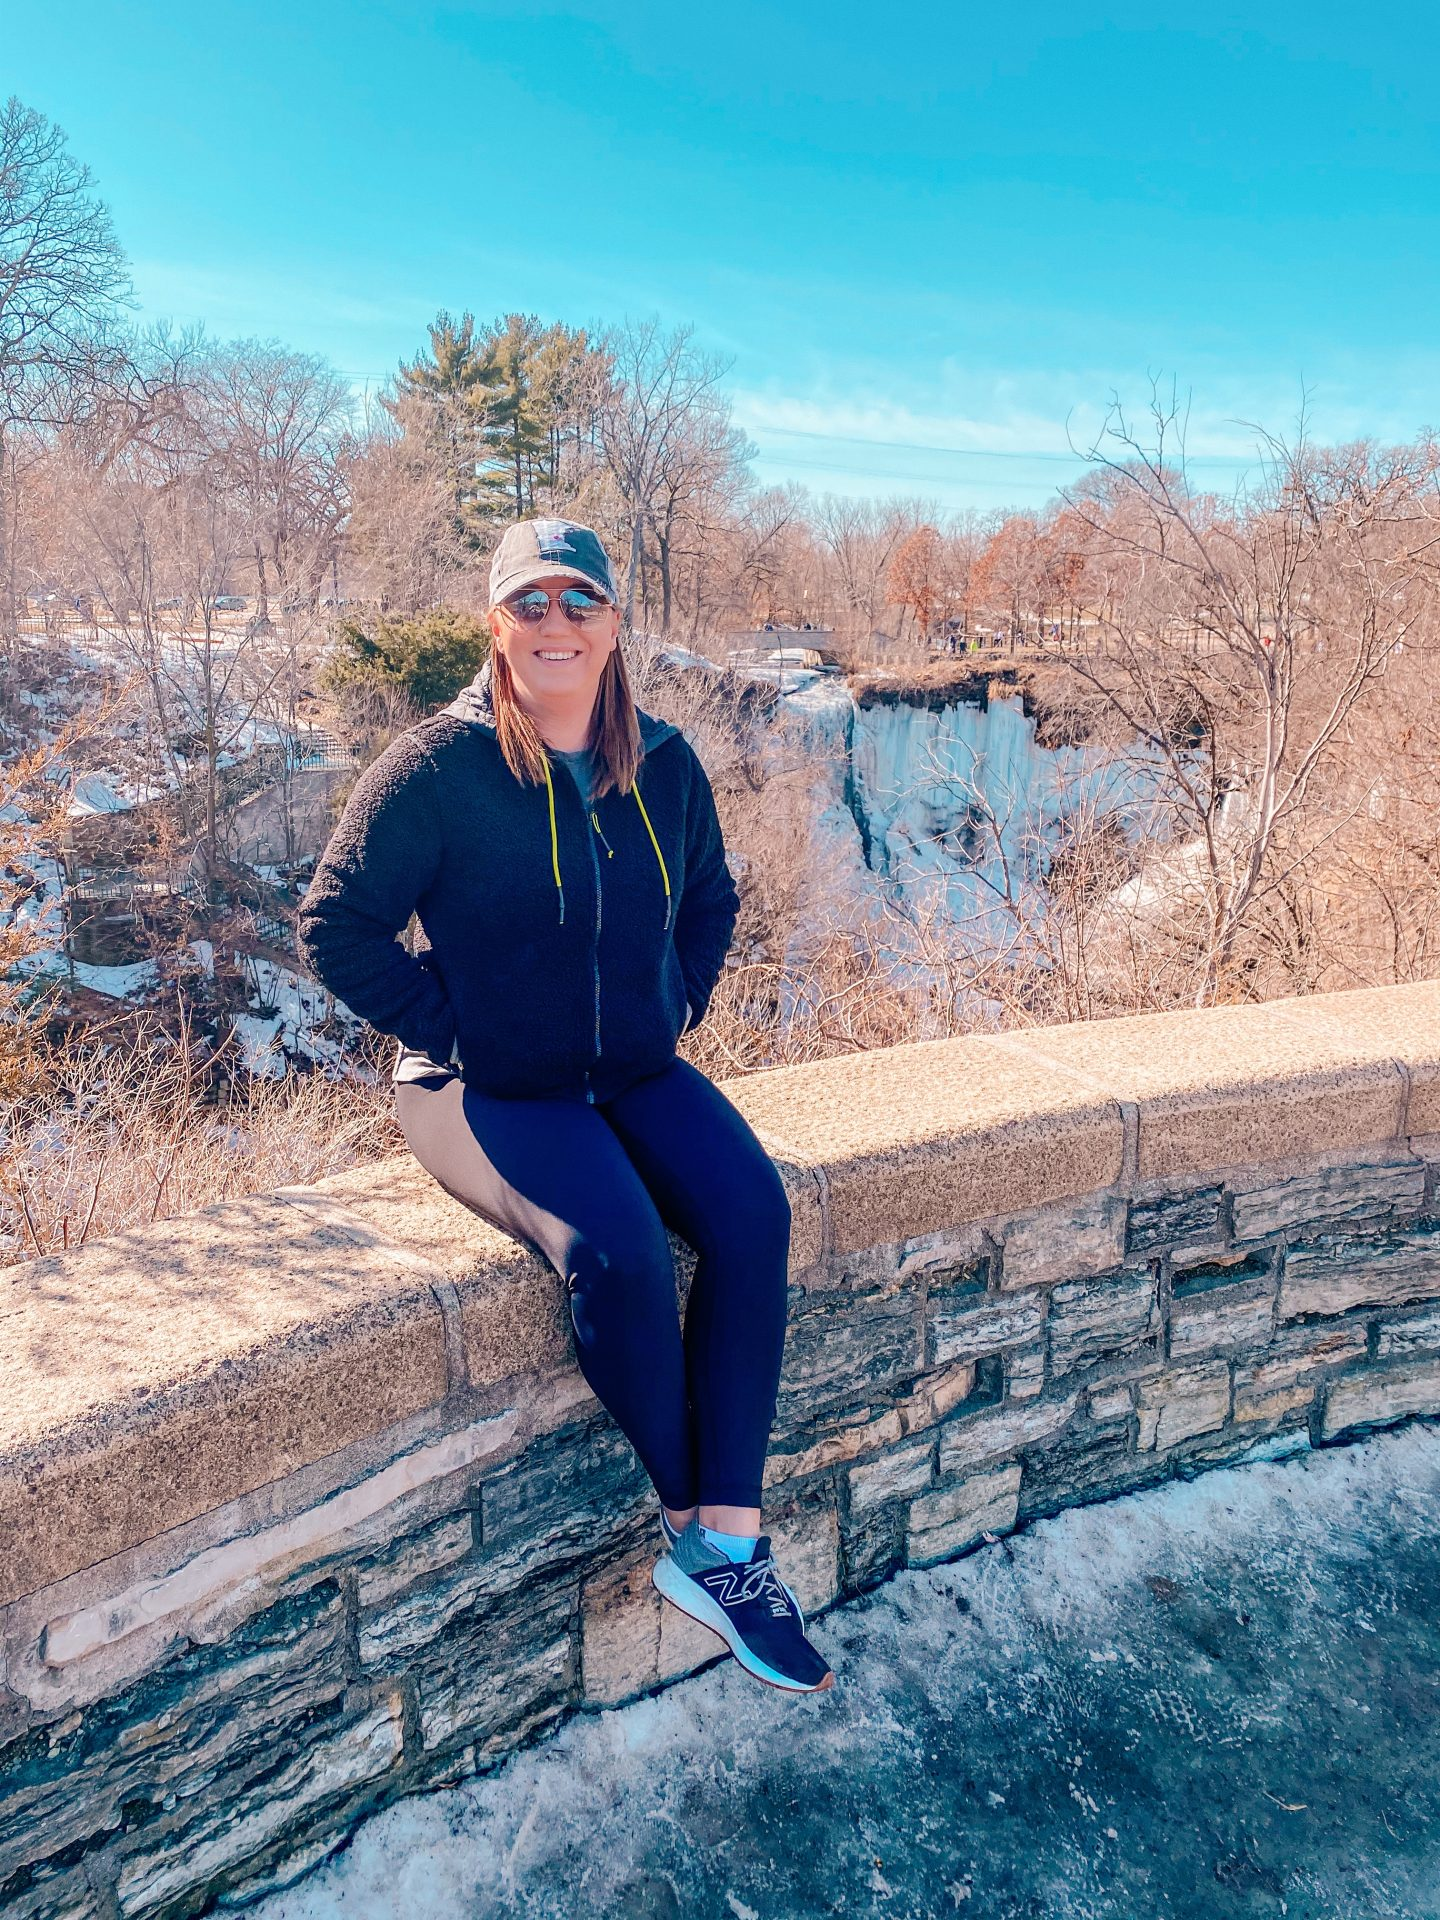 Woman sitting on brick ledge over looking the frozen minnehaha falls waterfall in minneapolis minnesota in the spring